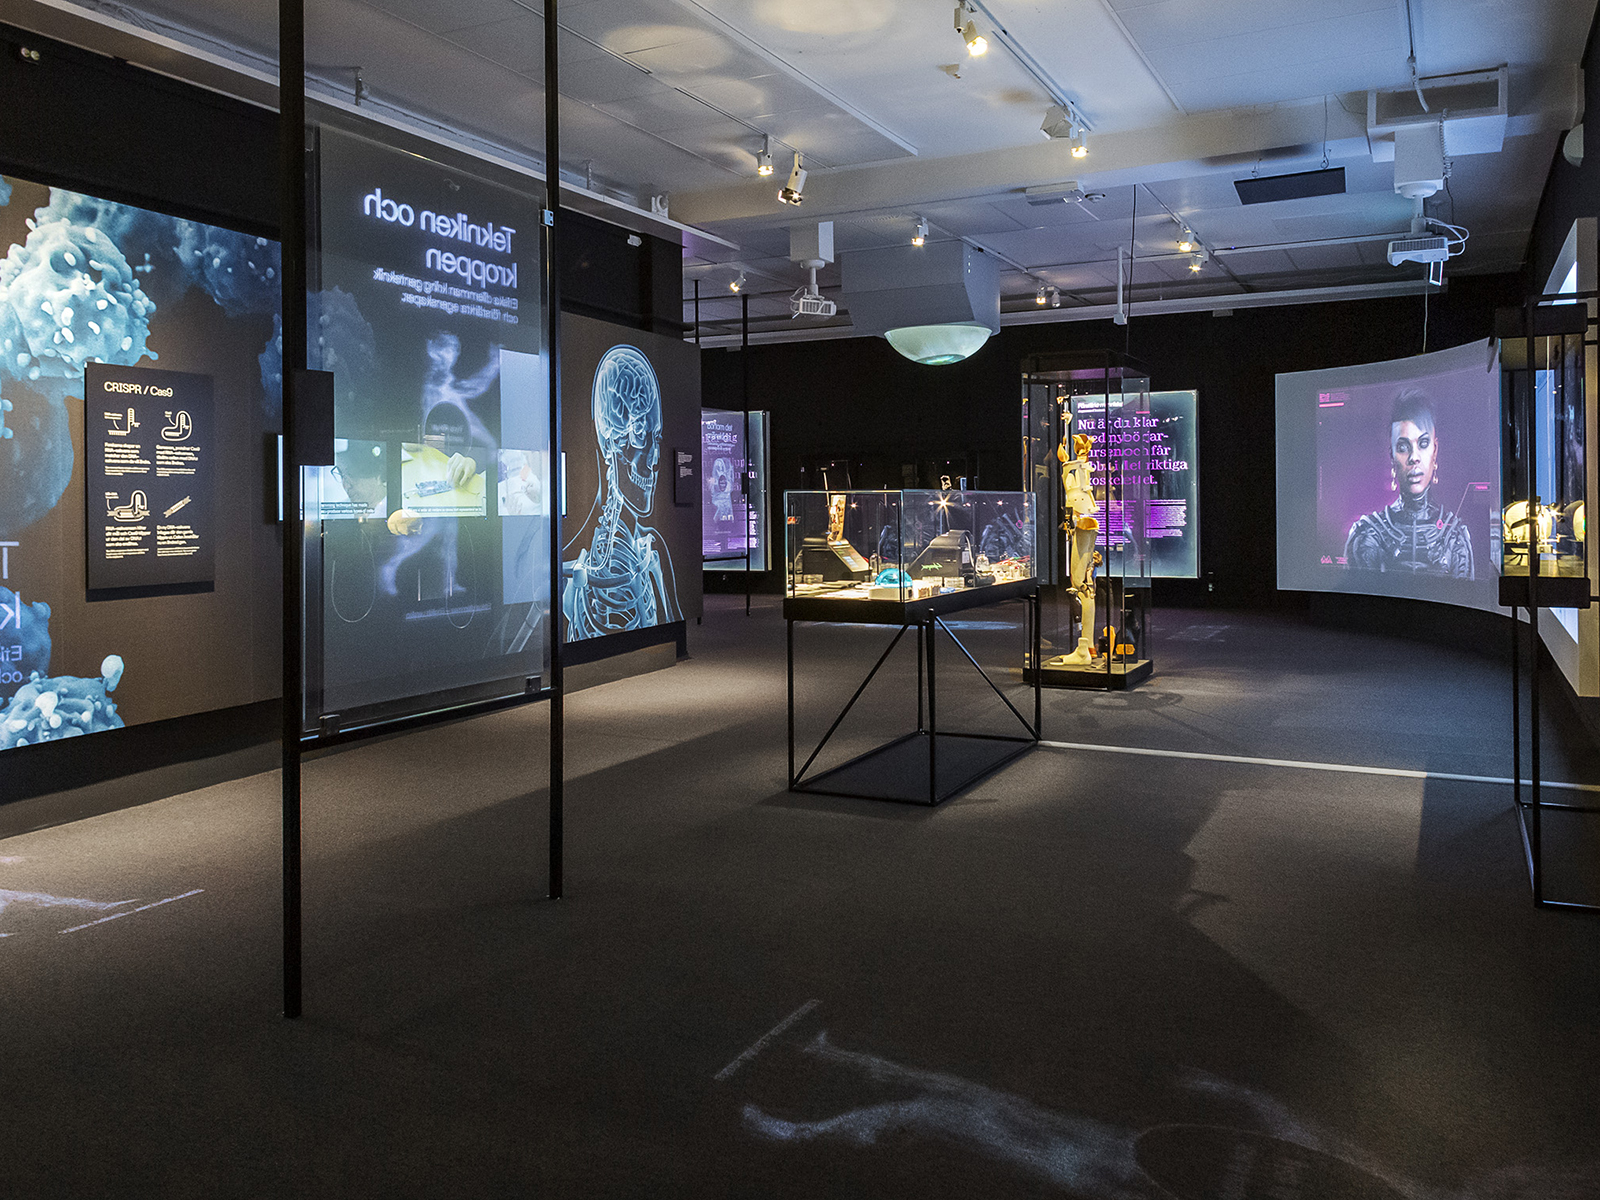 Hyper Human - A new exhibition opened at Tekniska museet in Stockholm March 2020